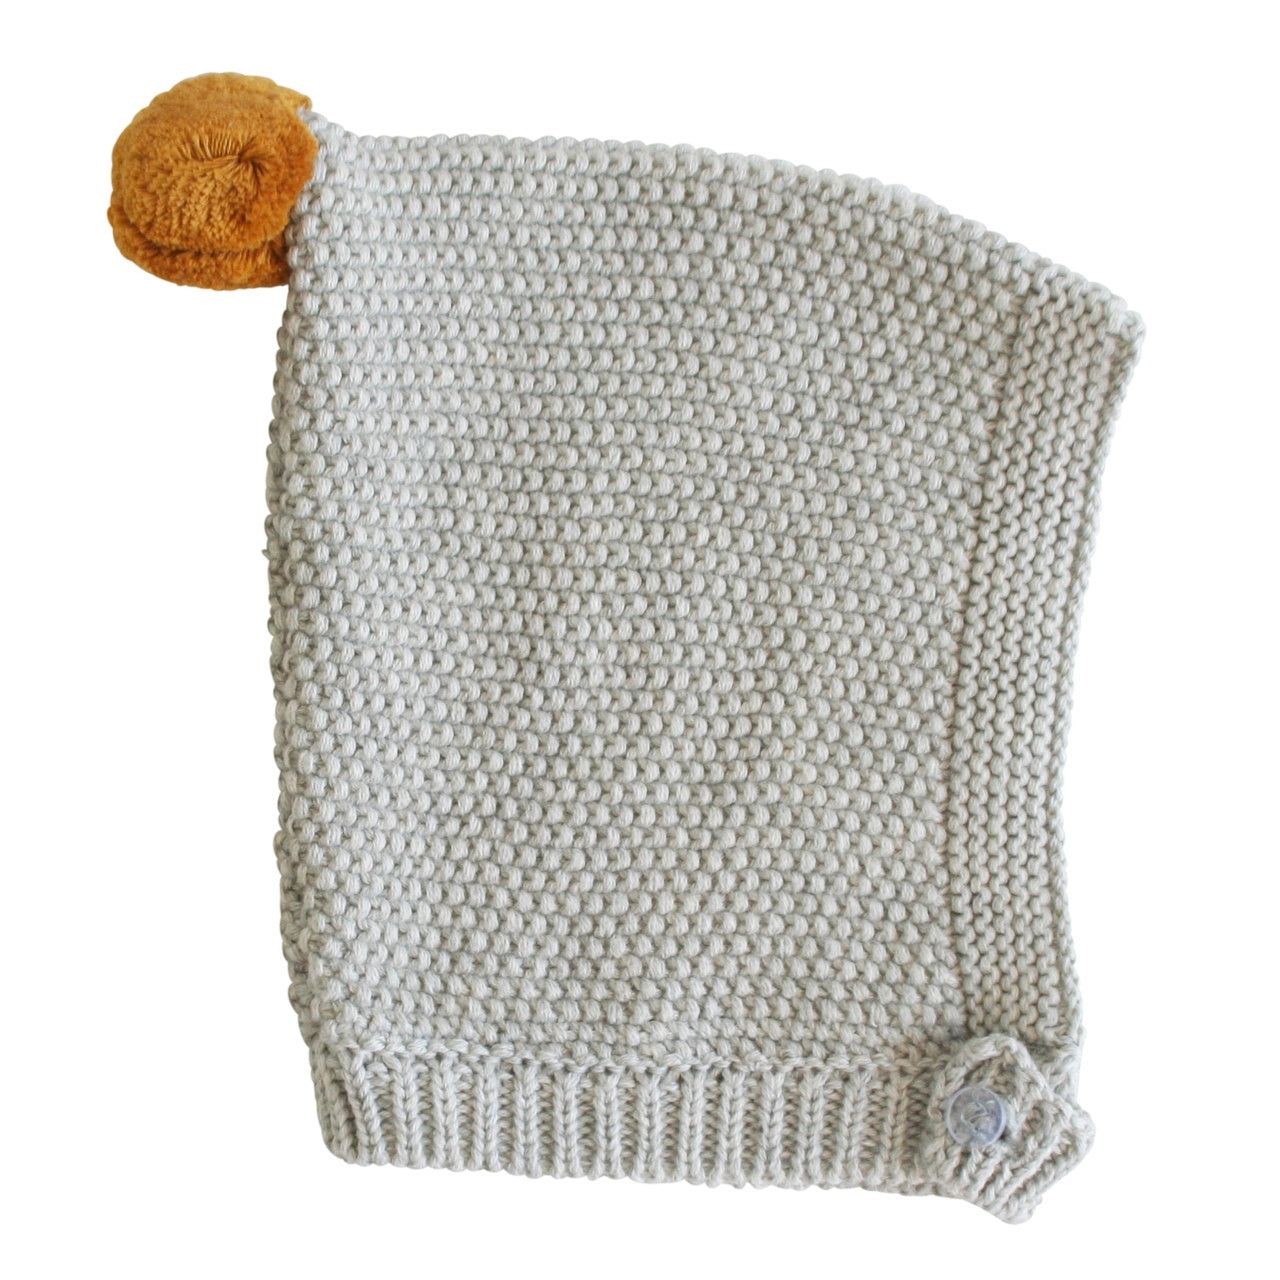 Alimrose Pom Pom Pixie Hat - Butterscotch & Grey